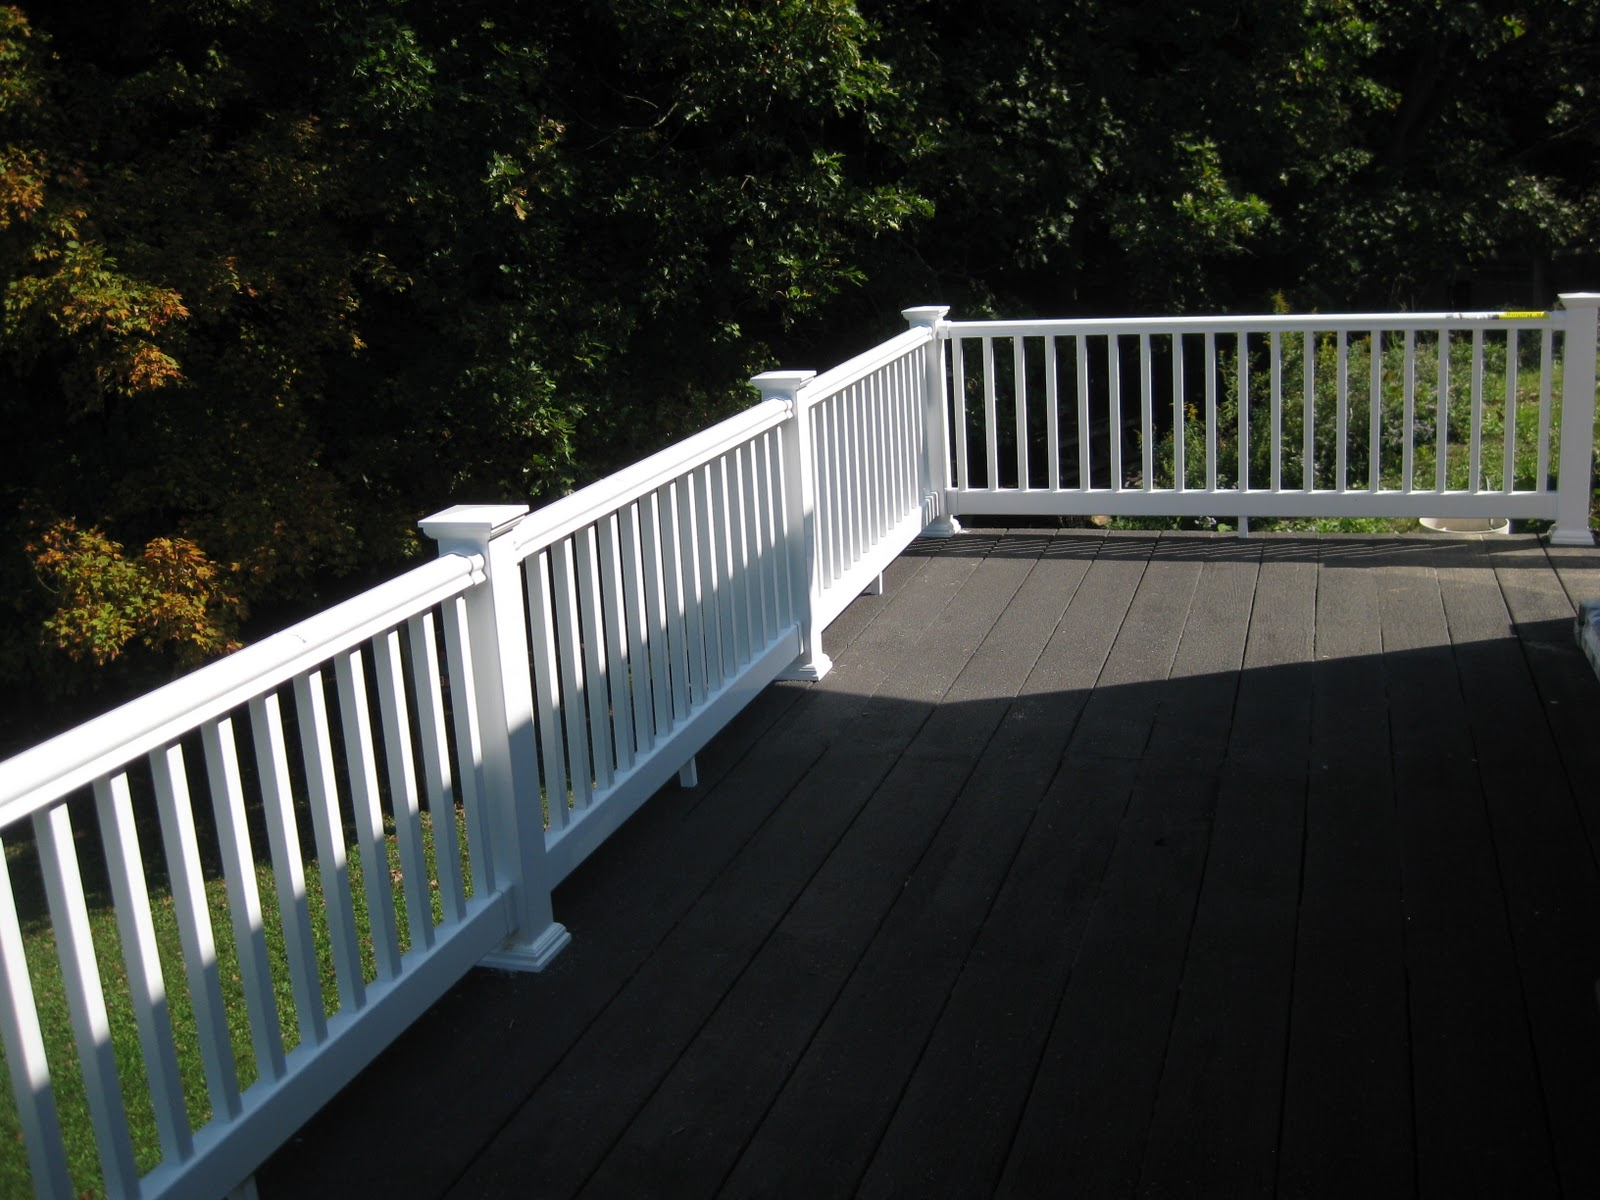 Wood Decks Non Slip Paint Wood Decks